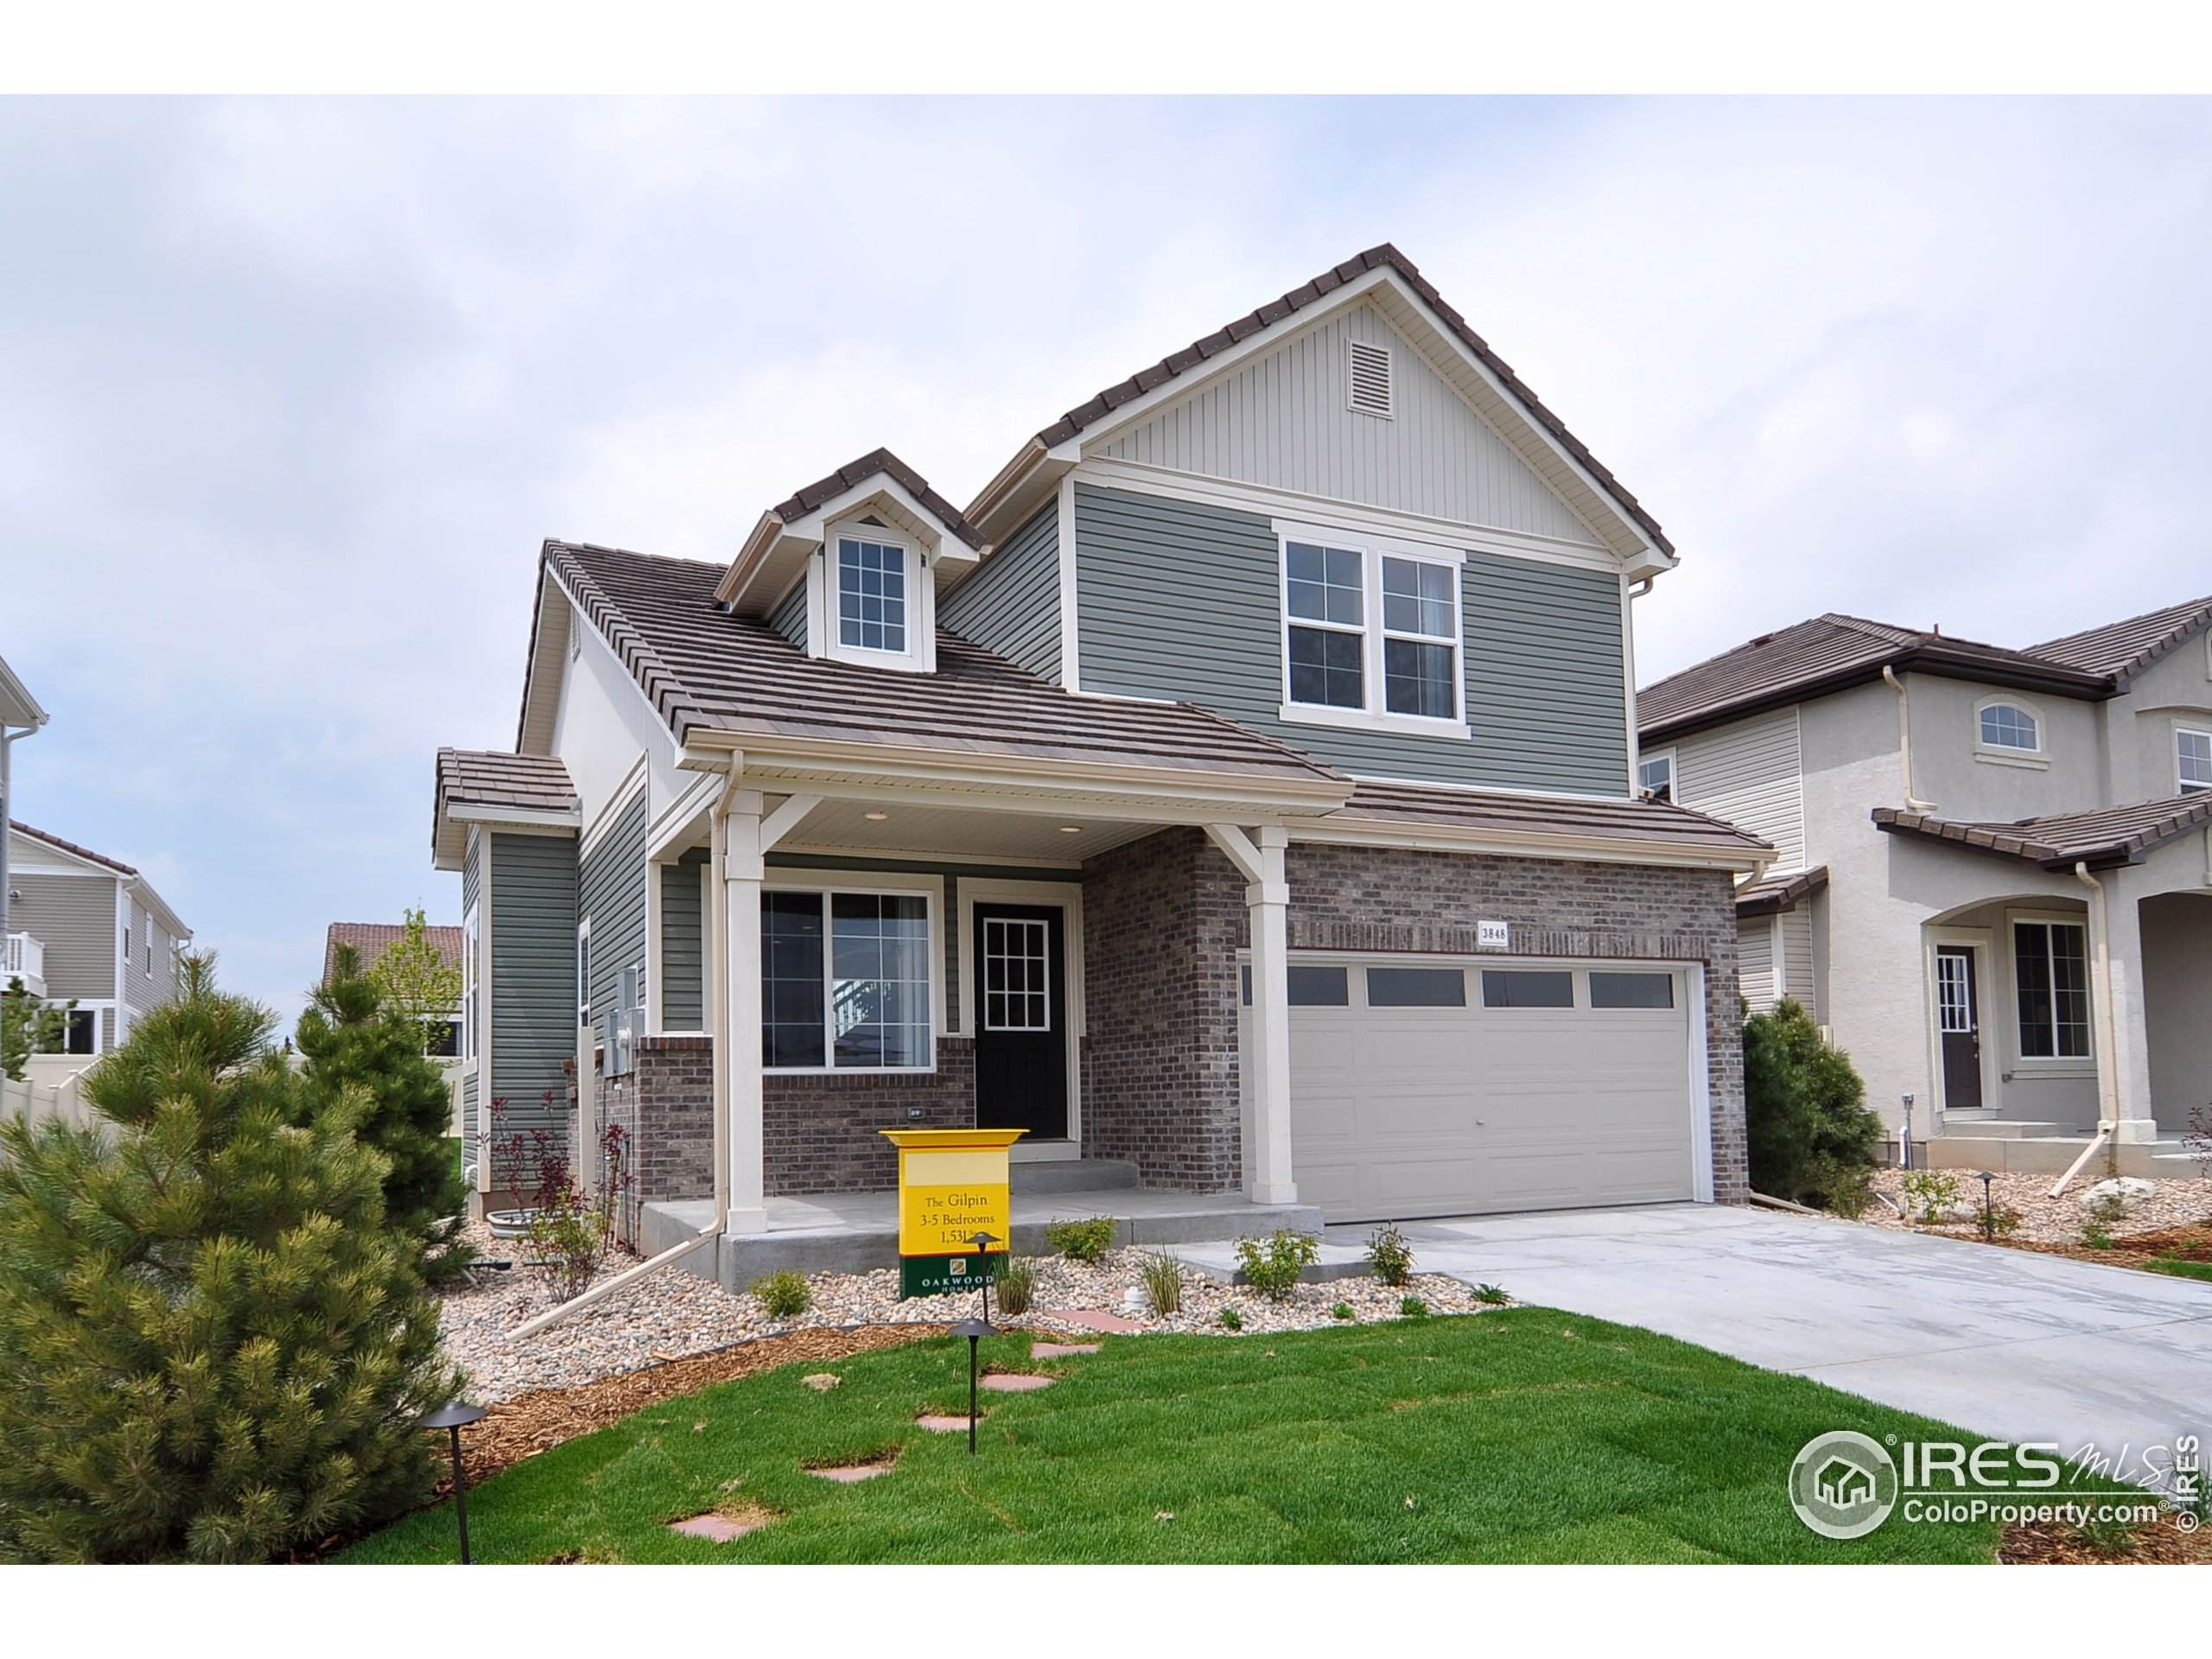 543 Country Rd, Berthoud, CO 80513 (MLS #929427) :: RE/MAX Alliance